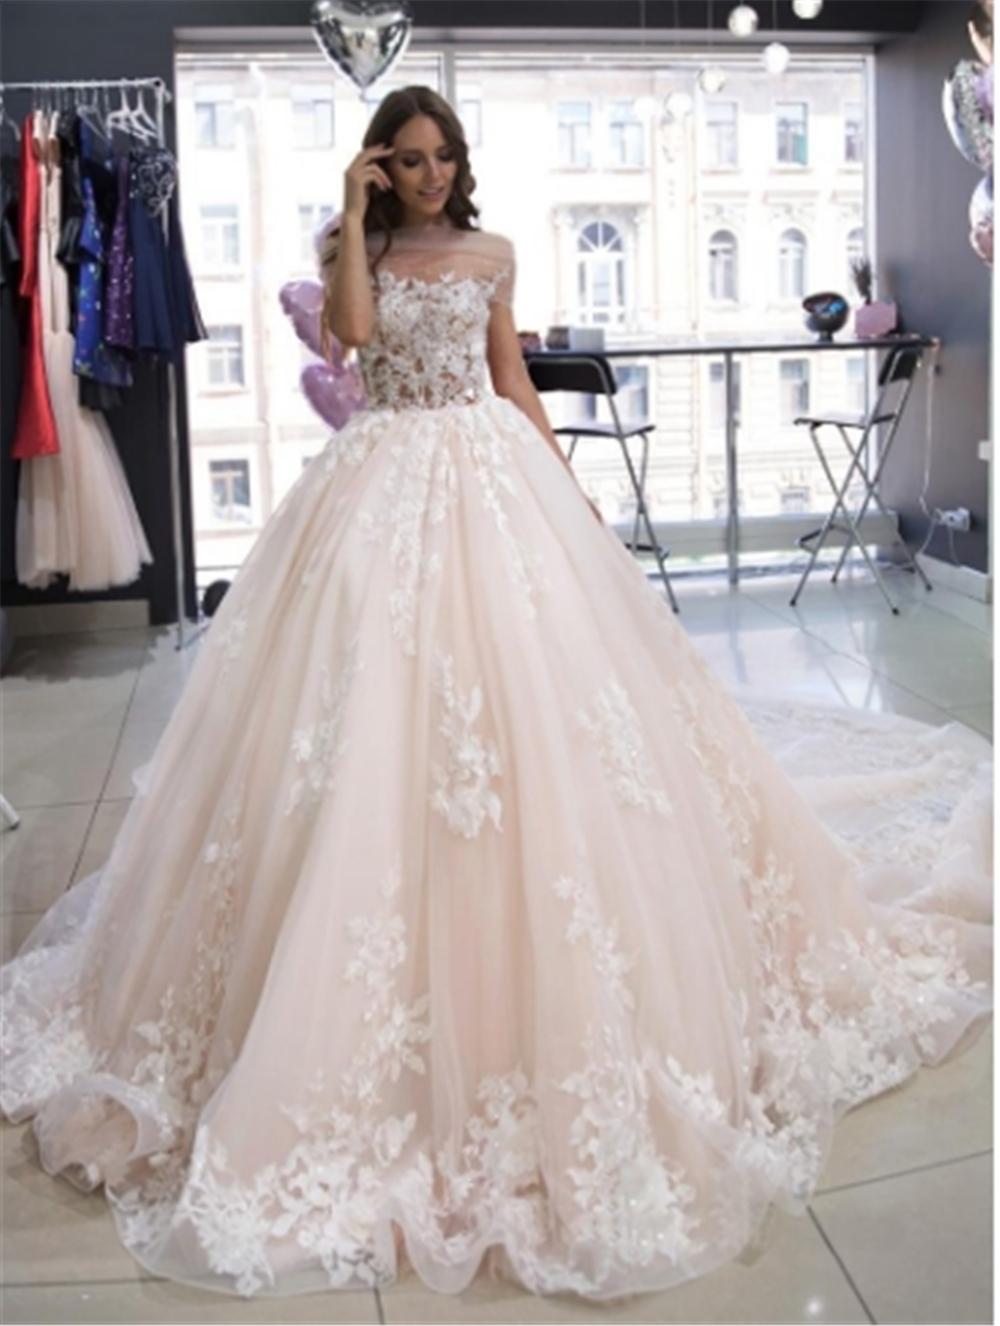 New Arrival Charming Embroidery On Net Wedding Dress 2019 Ball Gown Illusion Custom-made Bridal Gown Vestido De Noiva